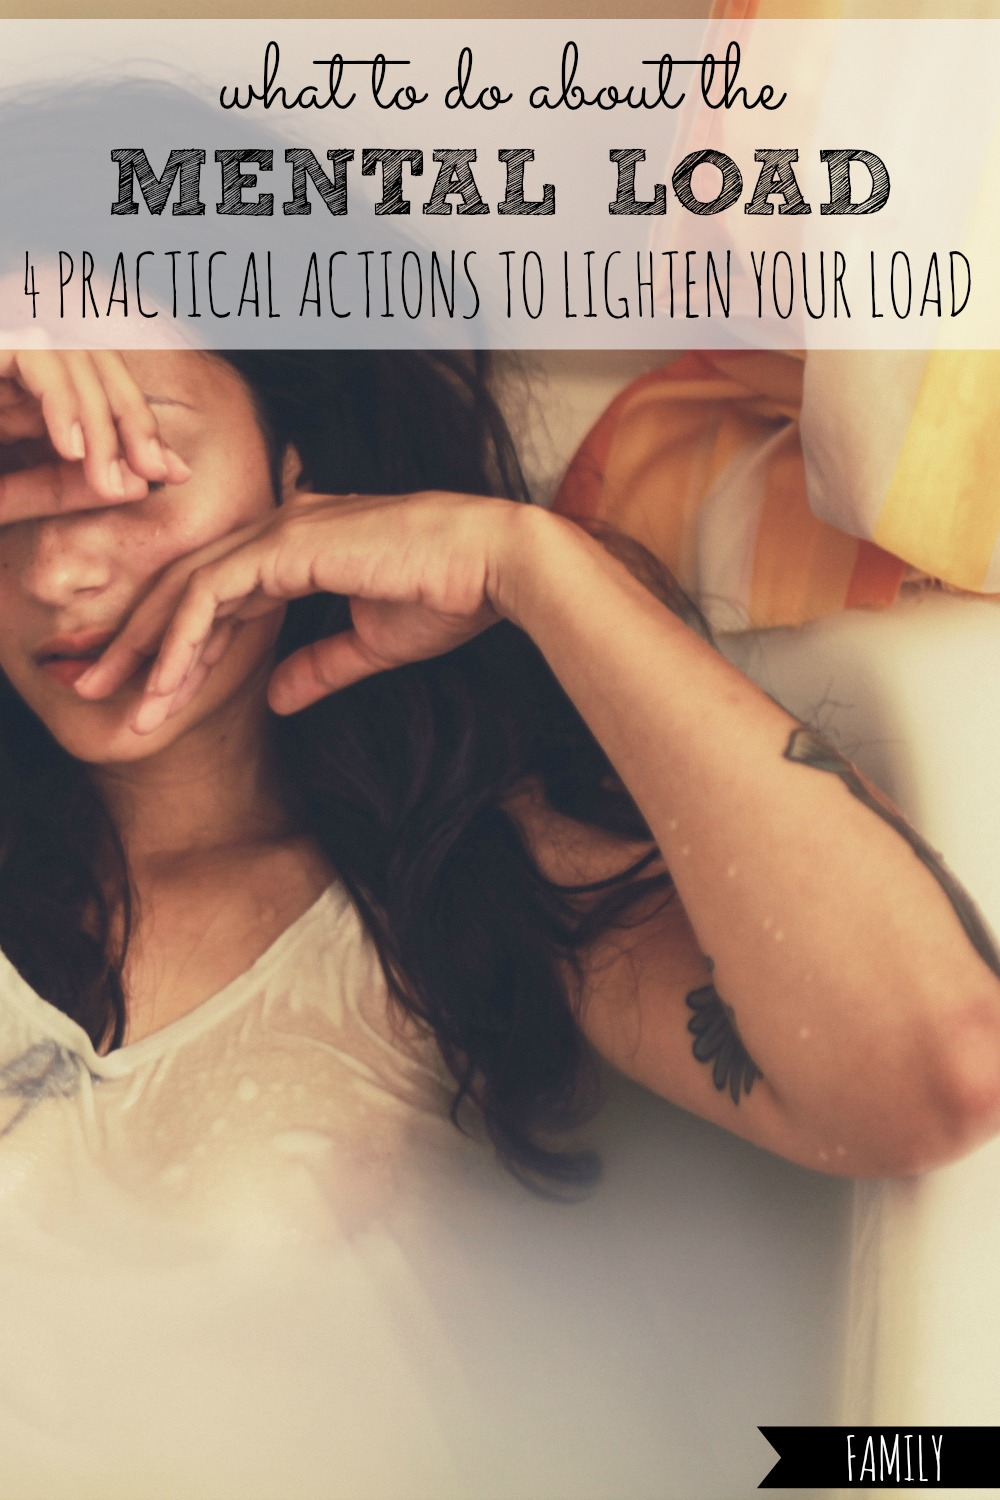 Do you carry your family's mental load by yourself, and feel overworked and overwhelmed? Here are 4 practical actions you can take to lighten that load TODAY! #mental #load #loads #overworked #overwhelmed #overwhelming #overwhelm #lighten #teamwork #share #marriage #team #parent #parents #parenting #parenthood